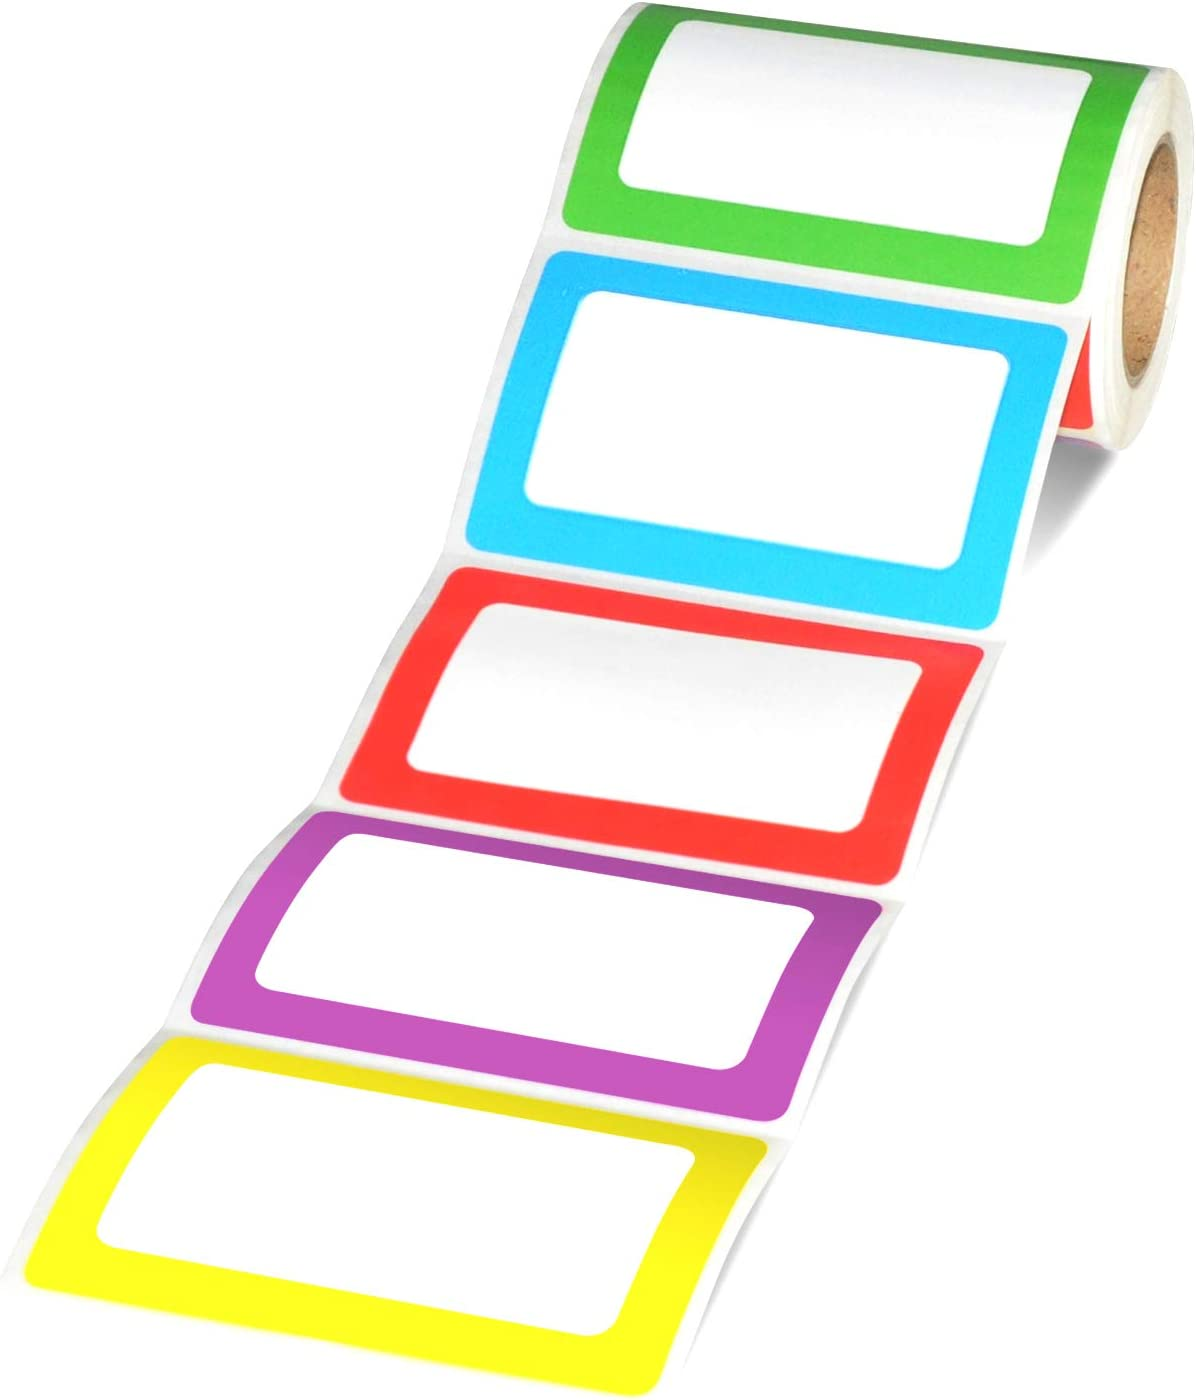 "Methdic 5 Colors Adhesive Name Tag Labels, 250 Stickers 3.5"" x 2.25"" Plain Tags for Office & School"